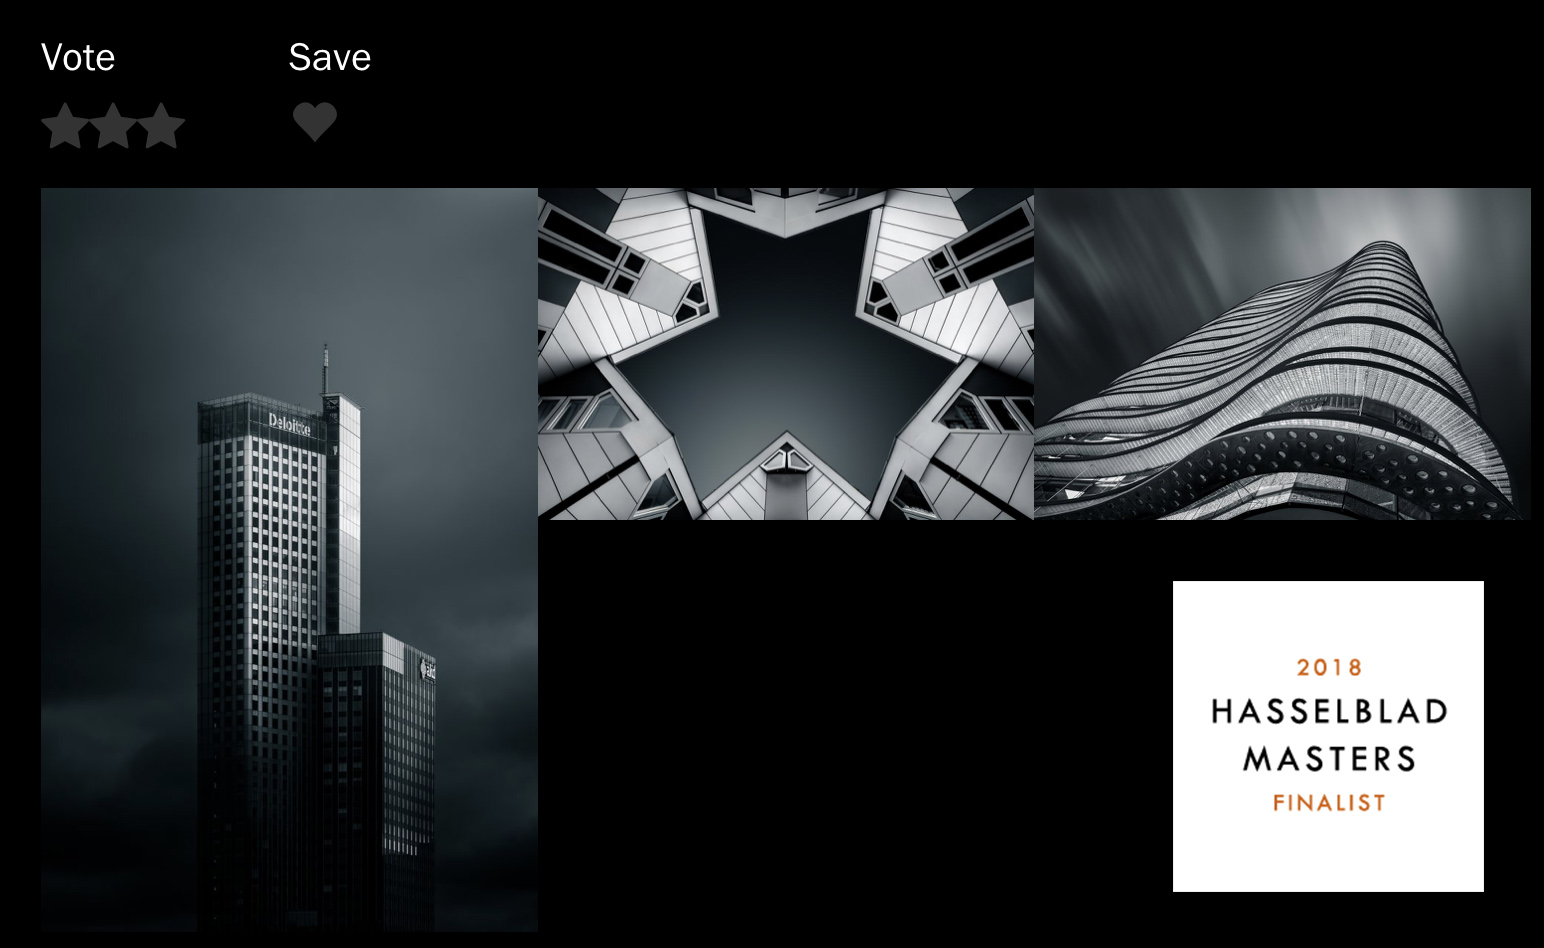 Hasselblad Masters 2018 Finalist